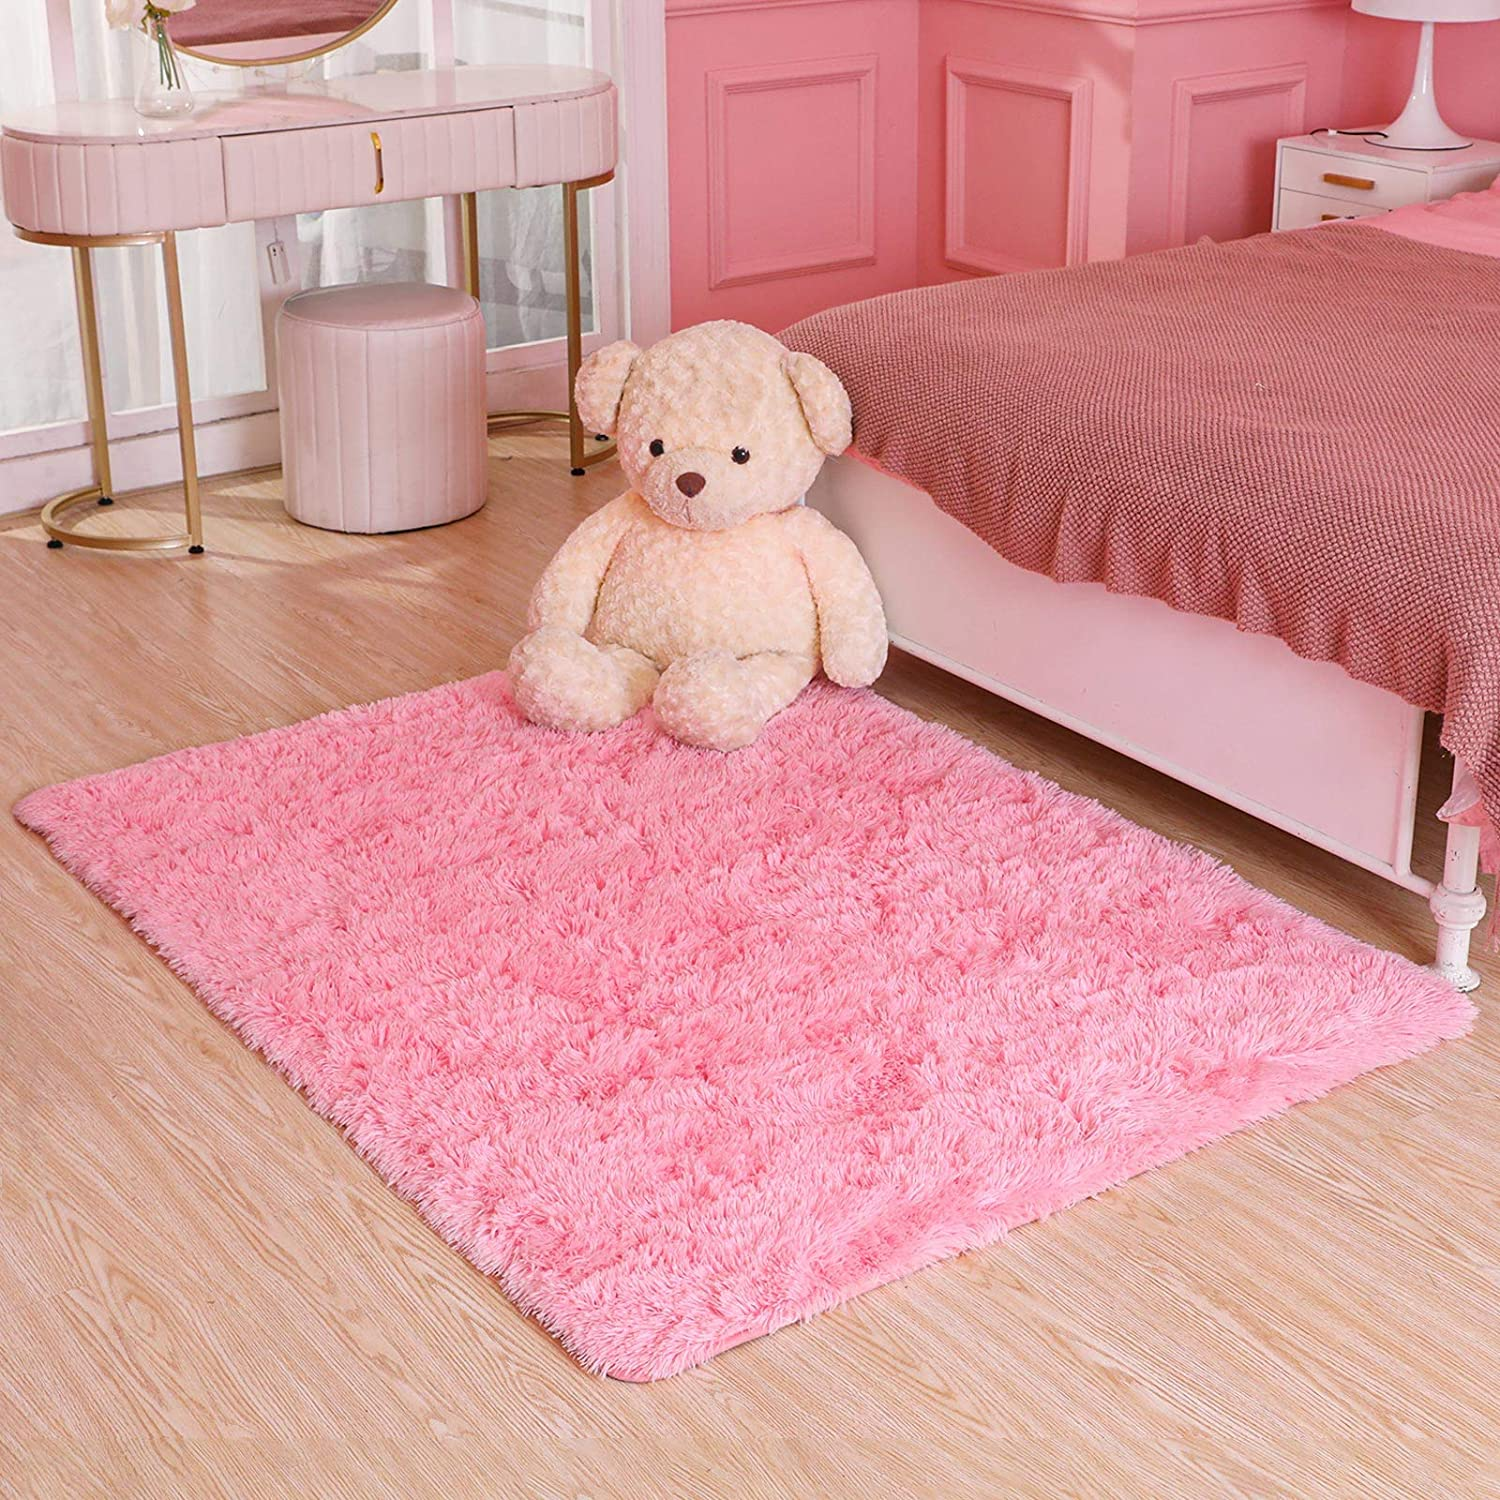 and Nursery Ophanie Ultra Soft Fluffy Area Rugs for Bedroom Girls Room Baby Room 2x3 Feet Blue Luxury Shag Rug Faux Fur Non-Slip Floor Carpet for Kids Room Modern Home Decor Play Room